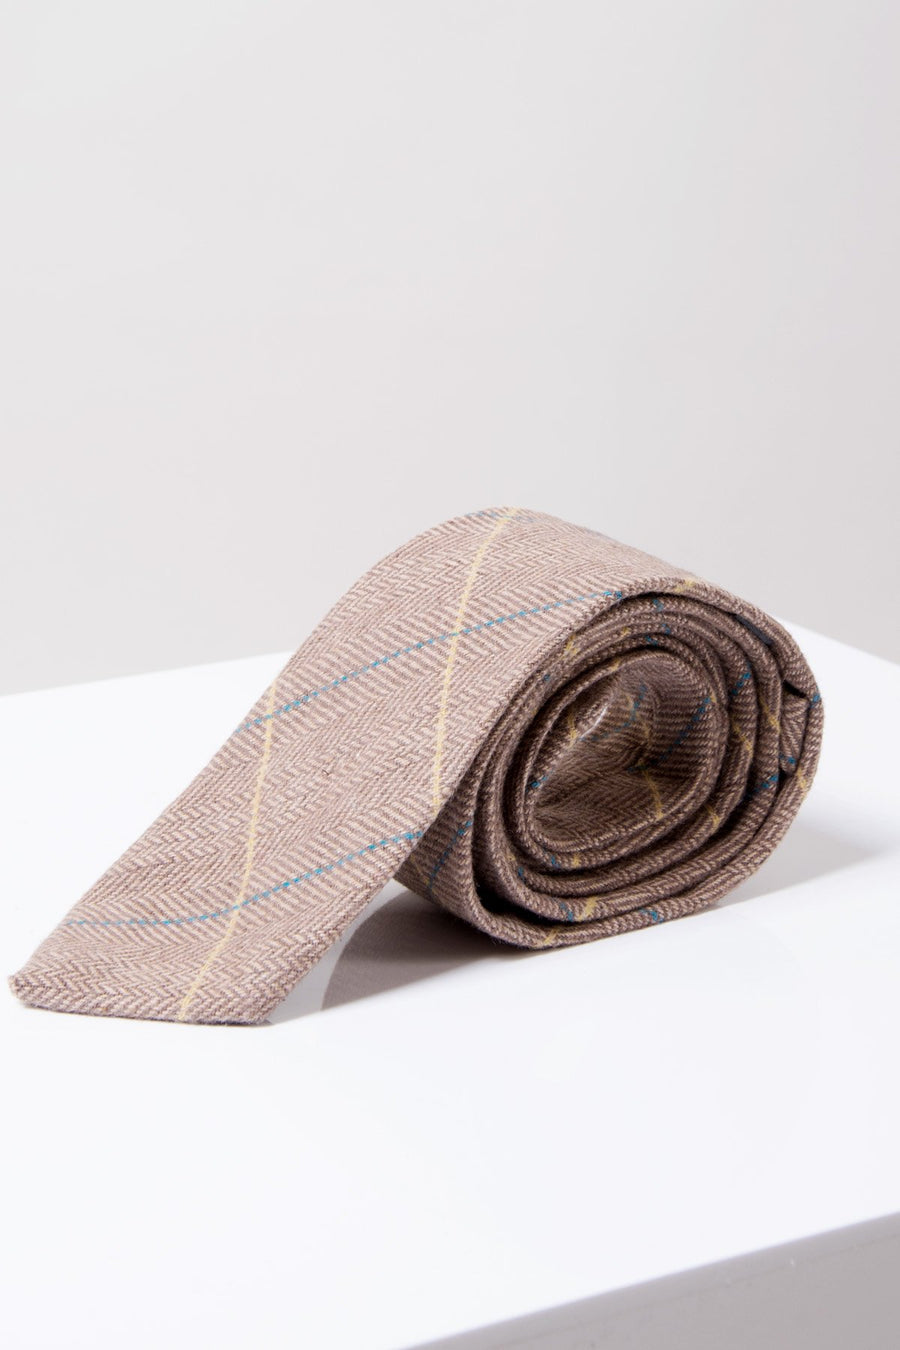 DX7 Oak Tweed Check Tie - Wedding Suit Direct